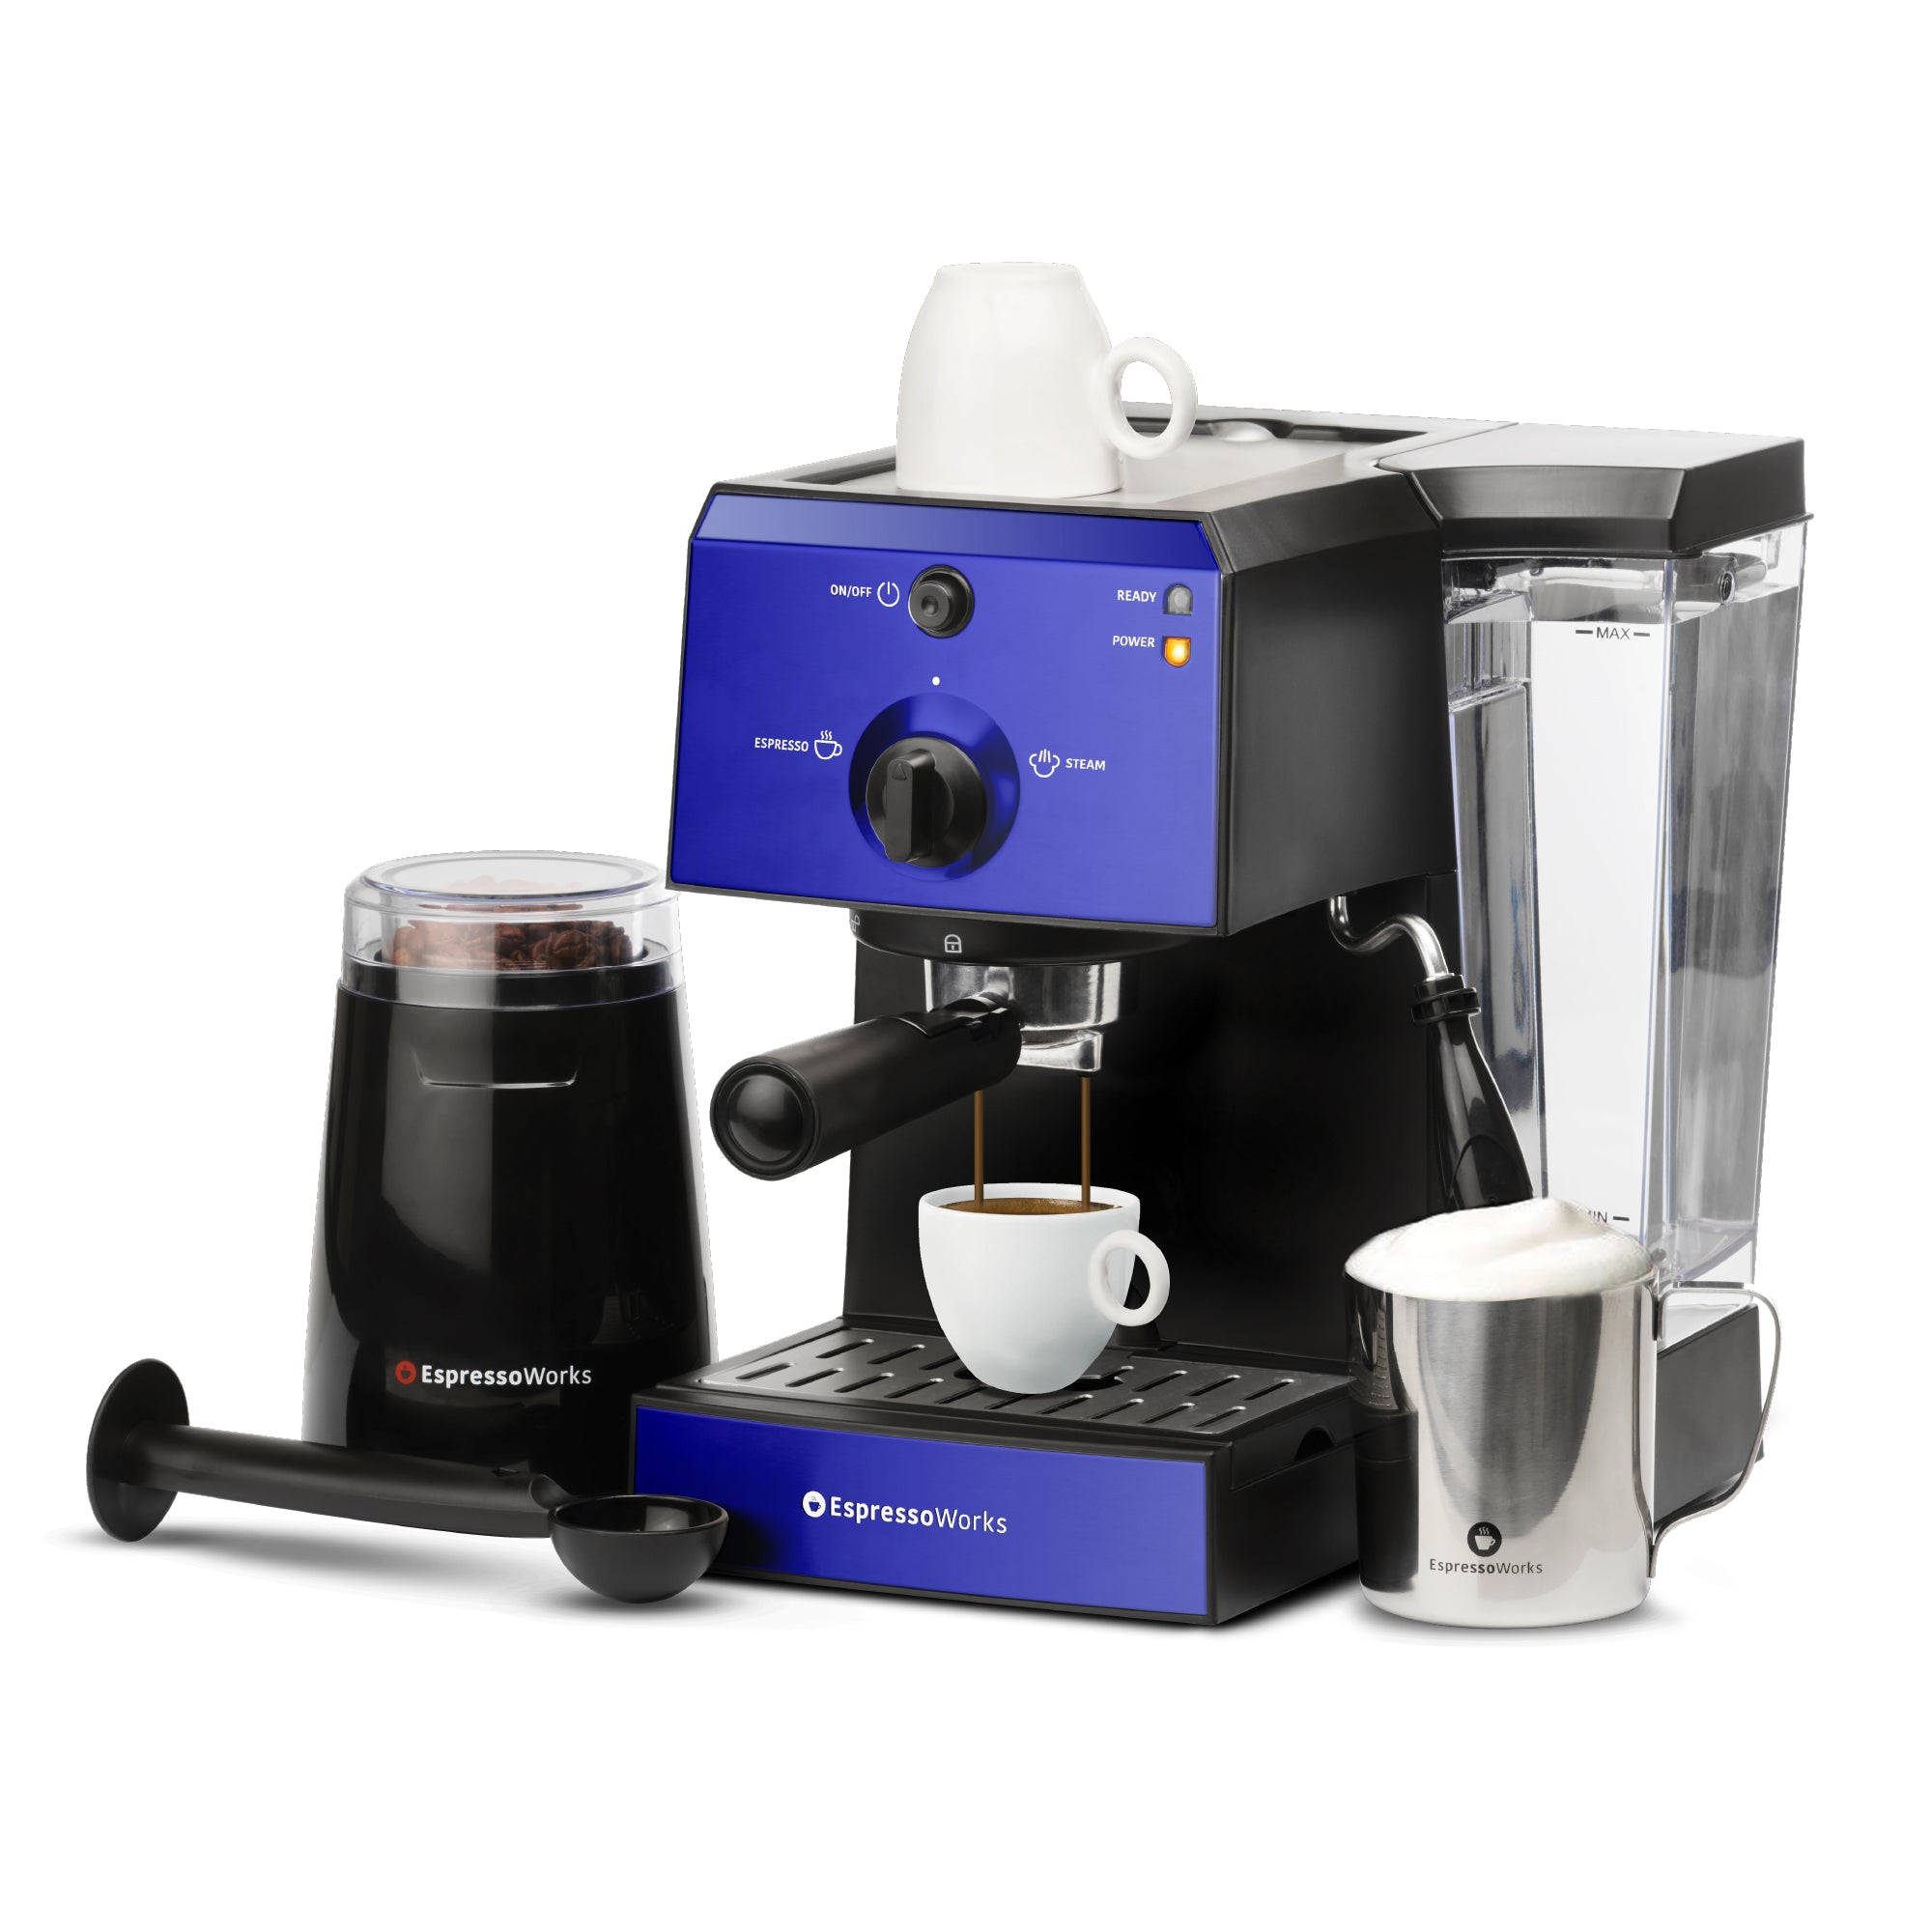 7-piece 15-bar EspressoWorks Espresso Machine Set Blue brewing an espresso